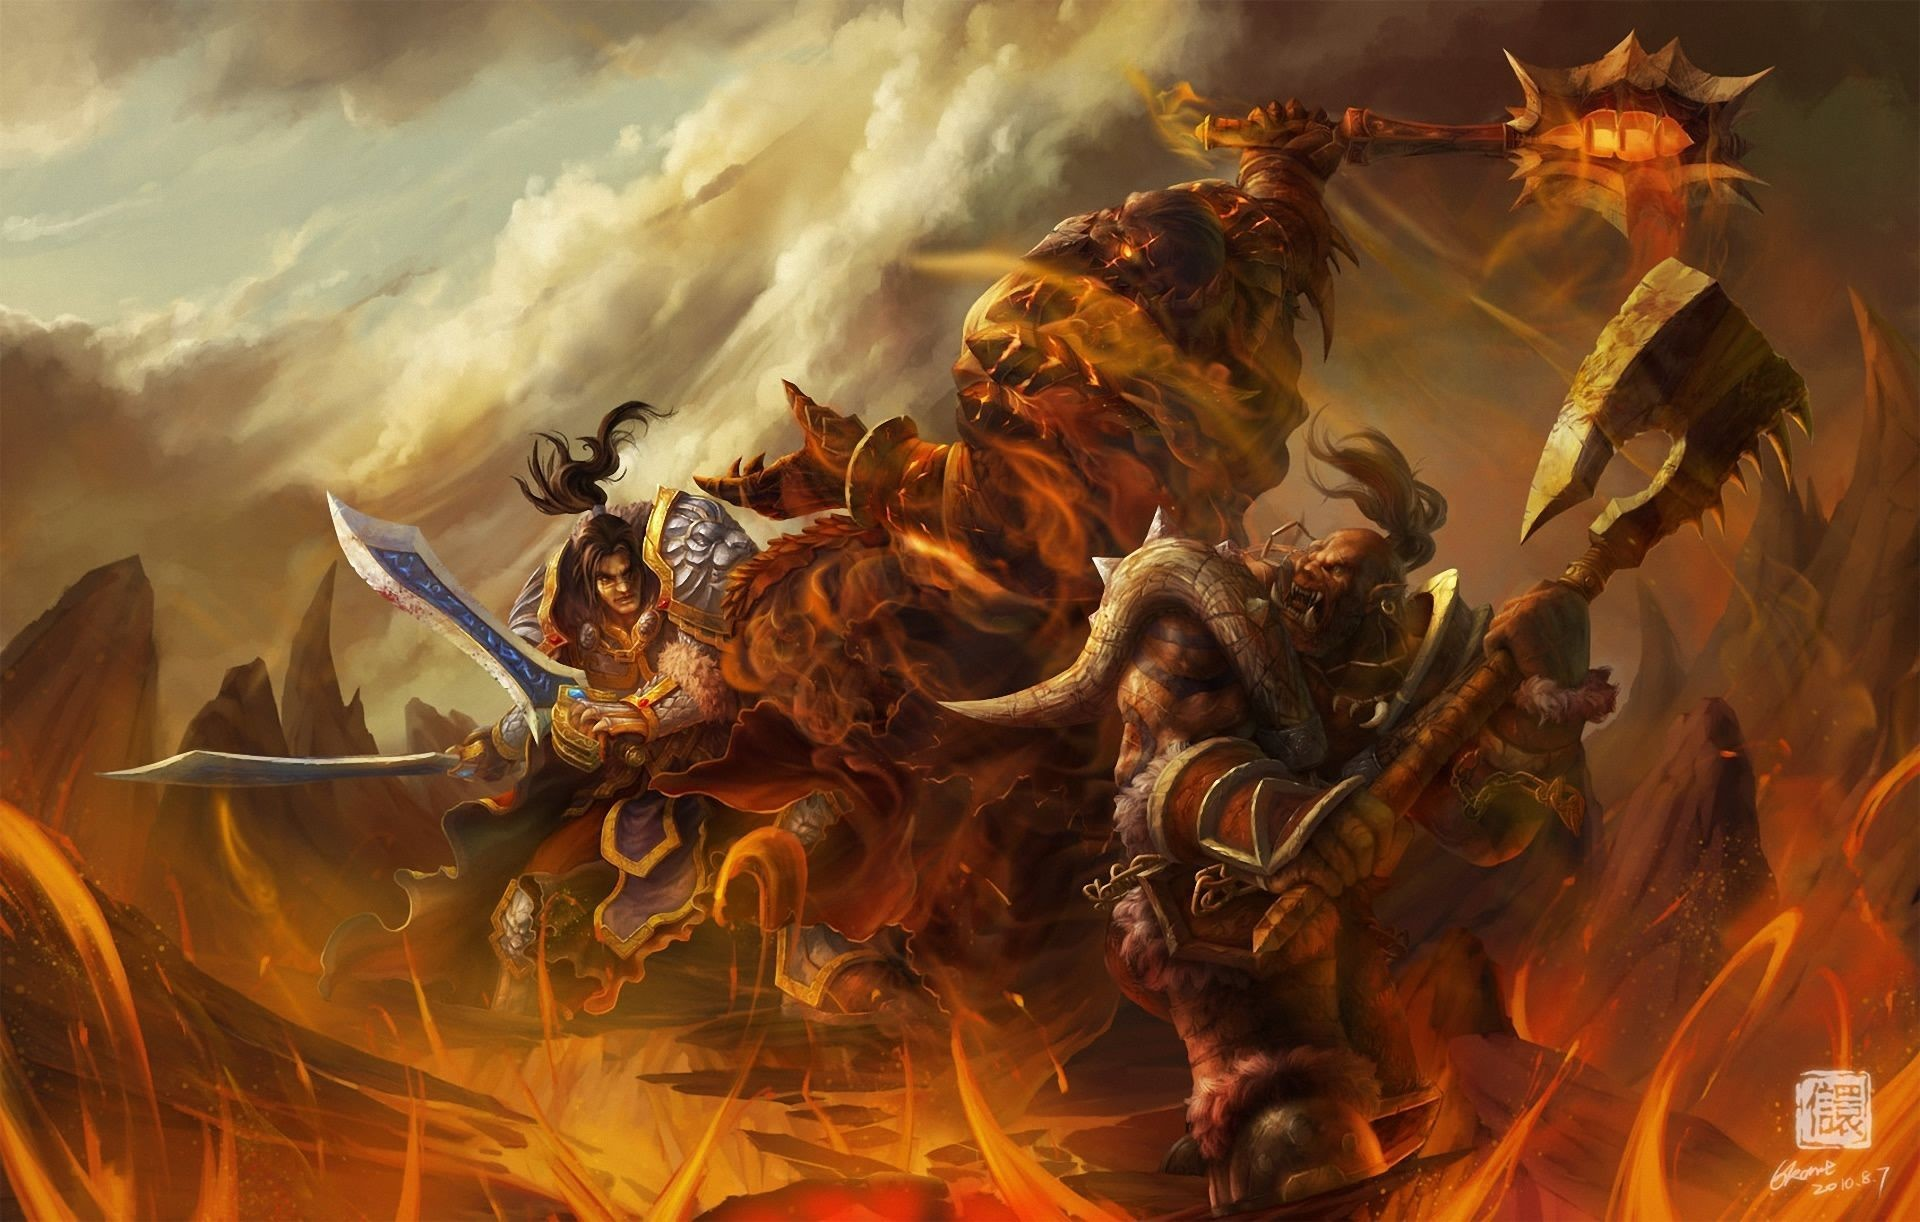 Res: 1920x1222, World of WarCraft WoW Warrior Orc Battle Monster axe Games fantasy .